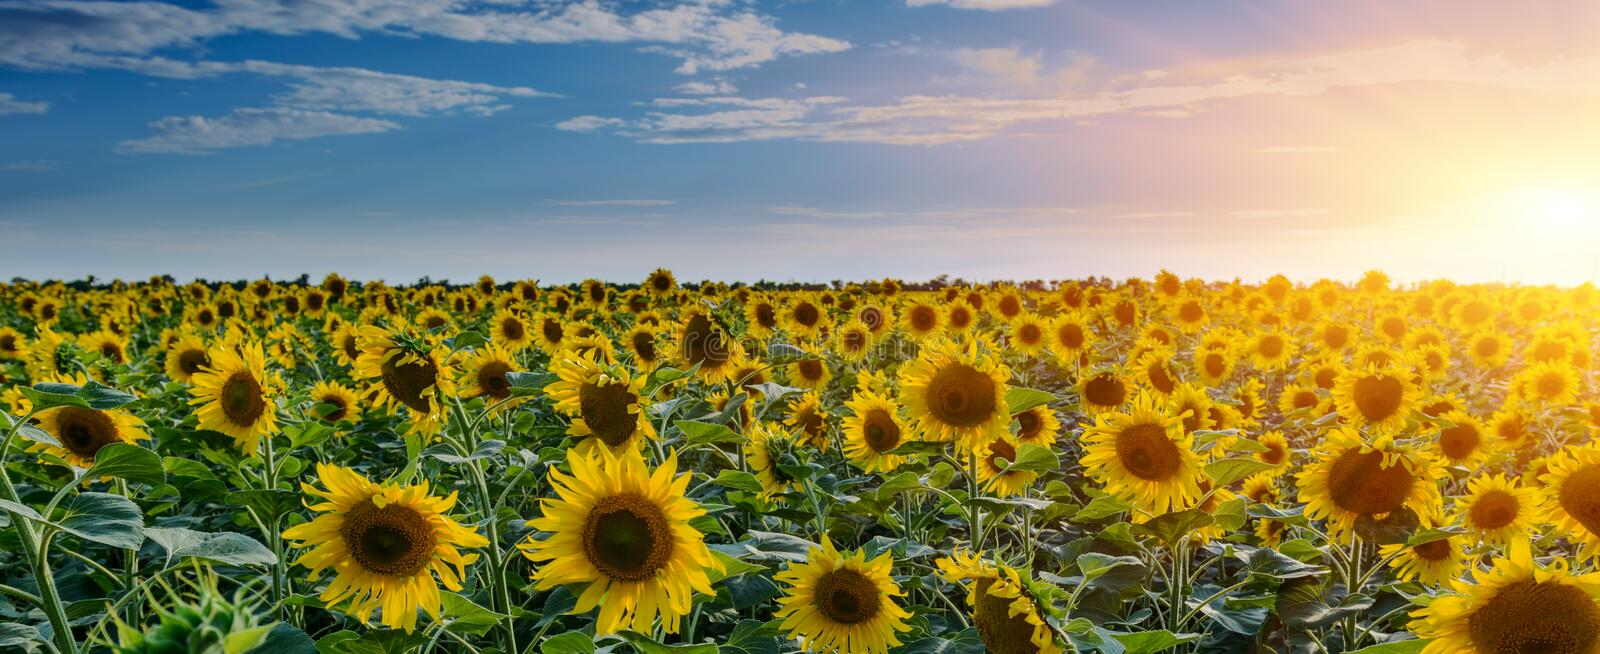 Sunflower fields during sunset. Digital composite of a sunrise over a field of golden yellow sunflowers stock images